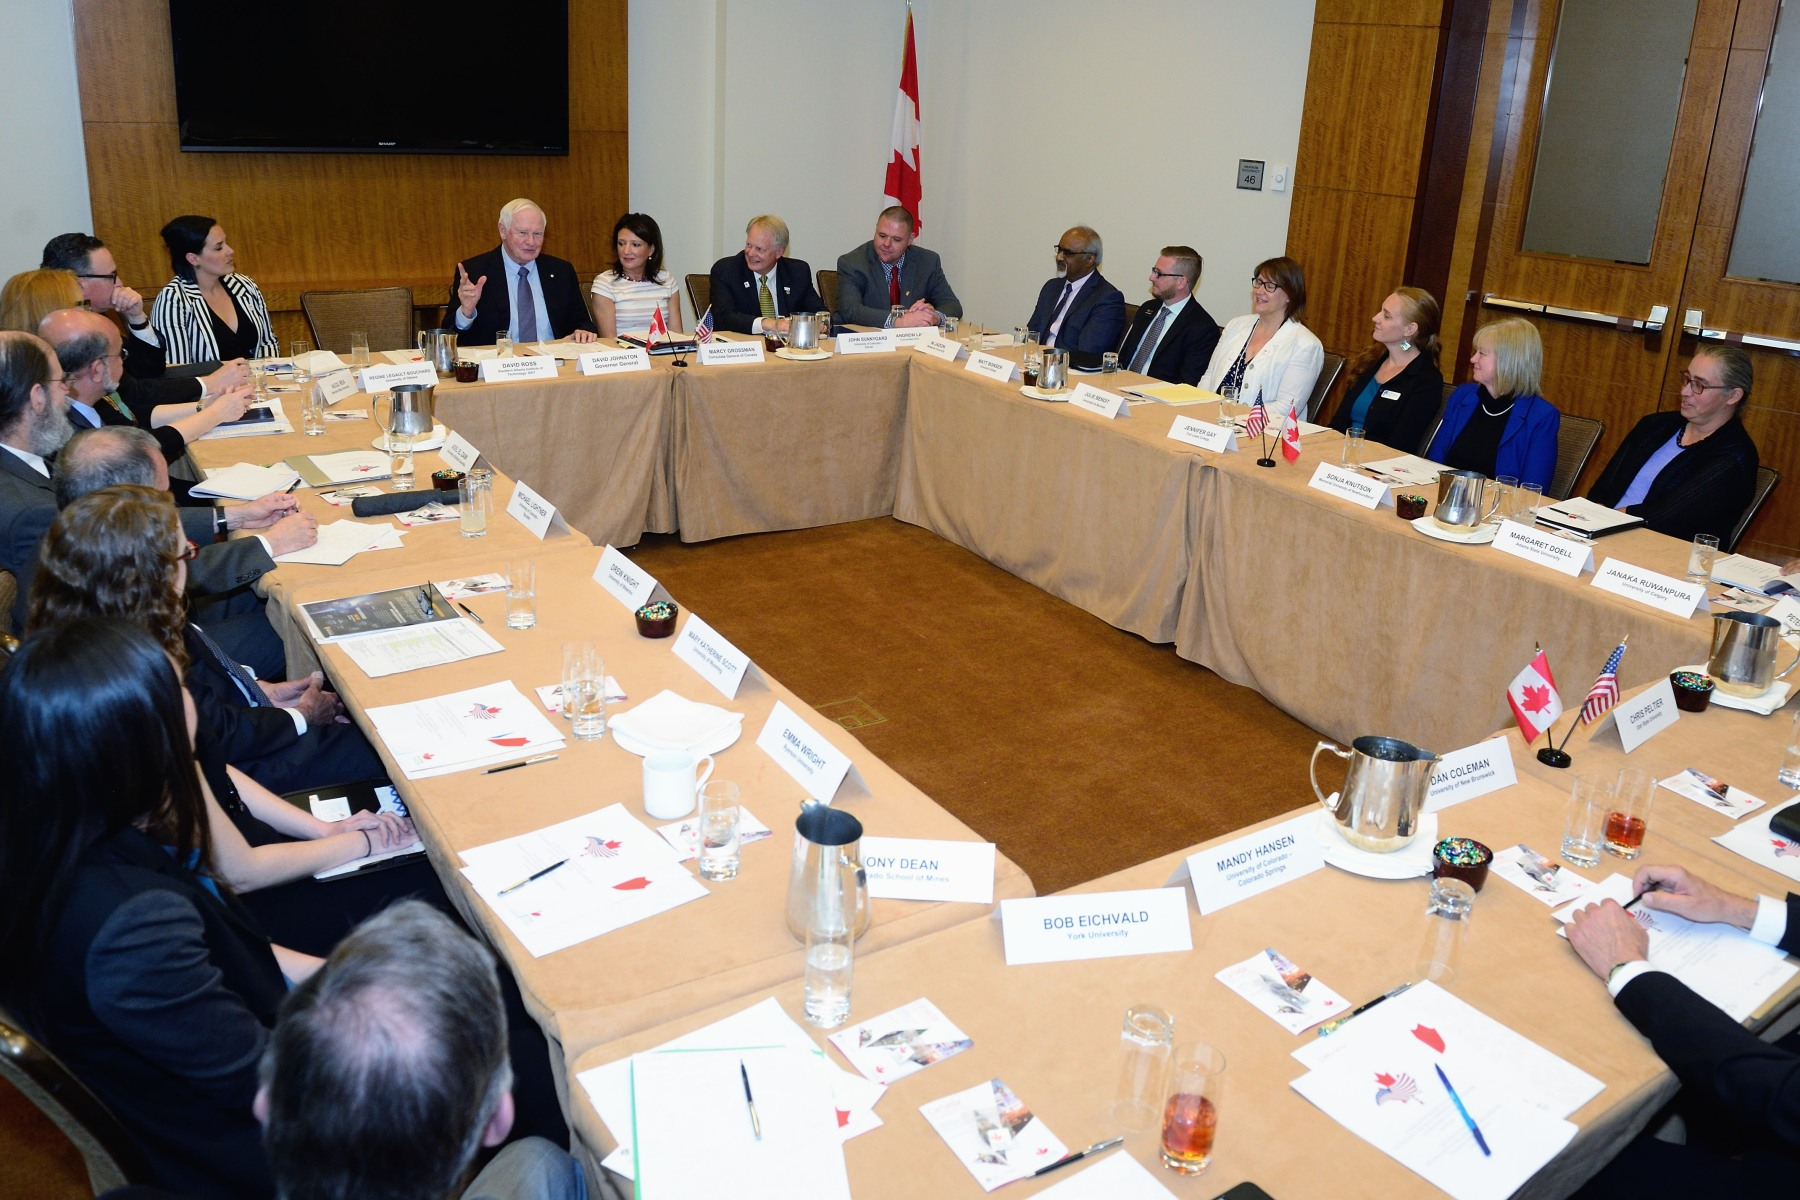 In the afternoon, His Excellency moderated an academic round-table discussion on the opportunities in higher education, the best practices and examples of international education student exchange programs, curriculum exchanges, the Canadian and U.S. studies program, and the joint research and joint technology transfer.